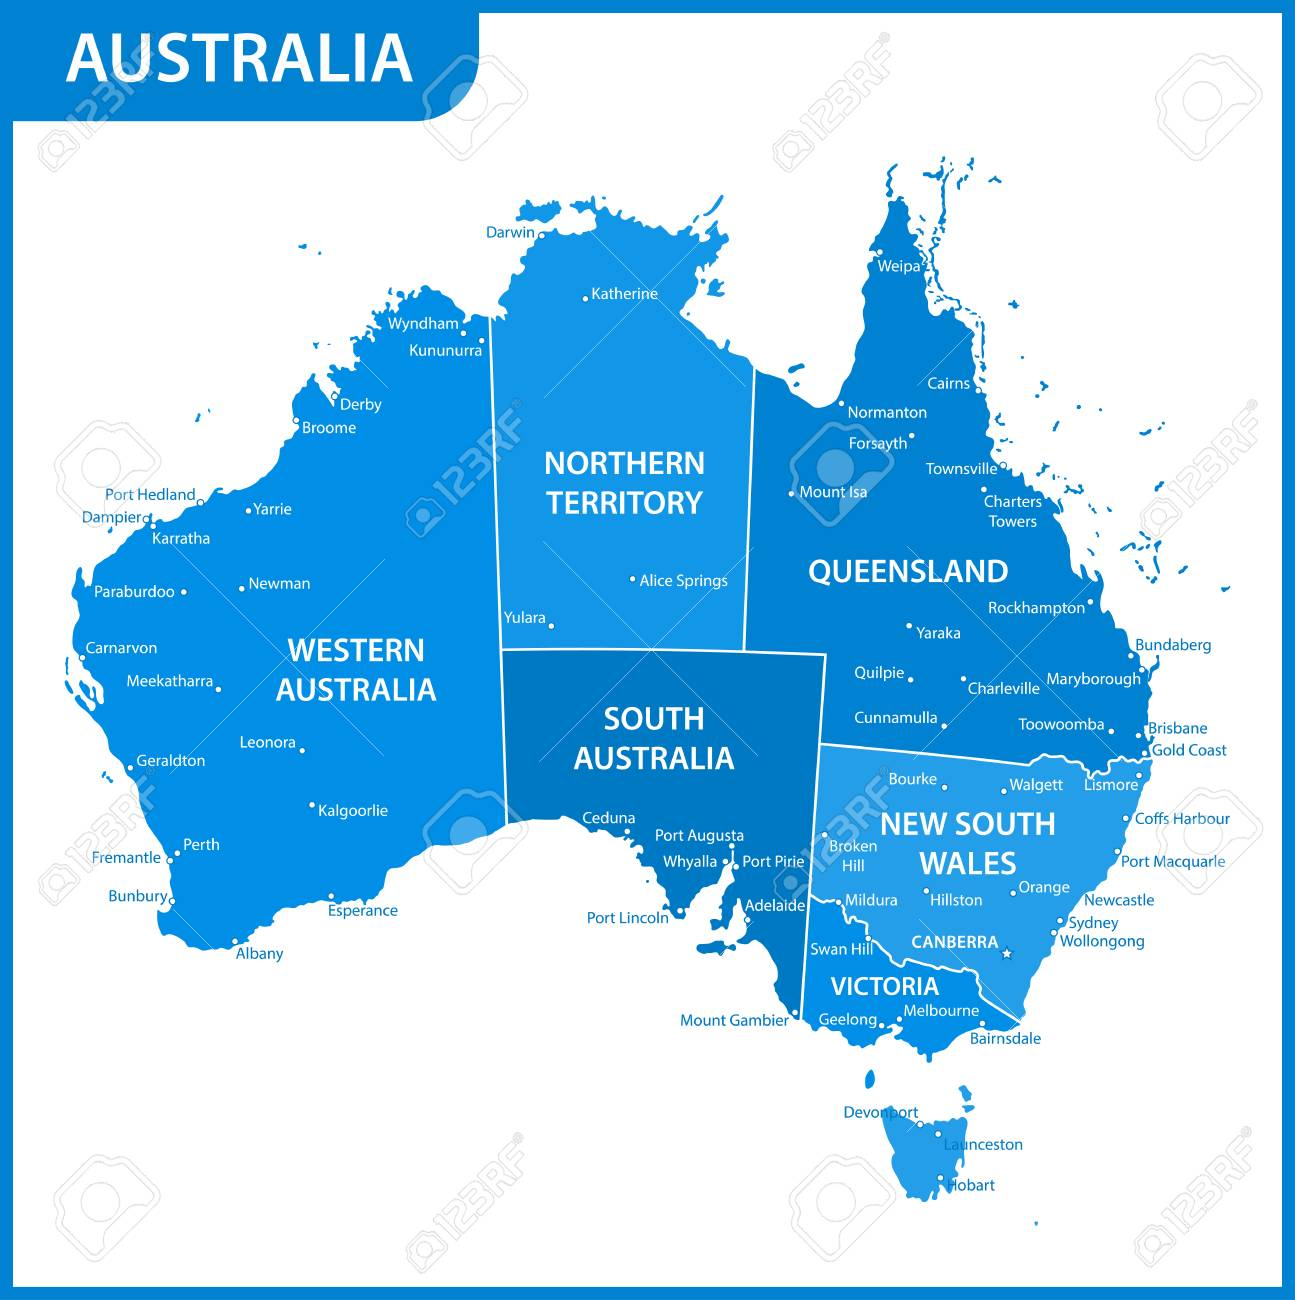 Australia Map With Capital Cities.The Detailed Map Of The Australia With Regions Or States And